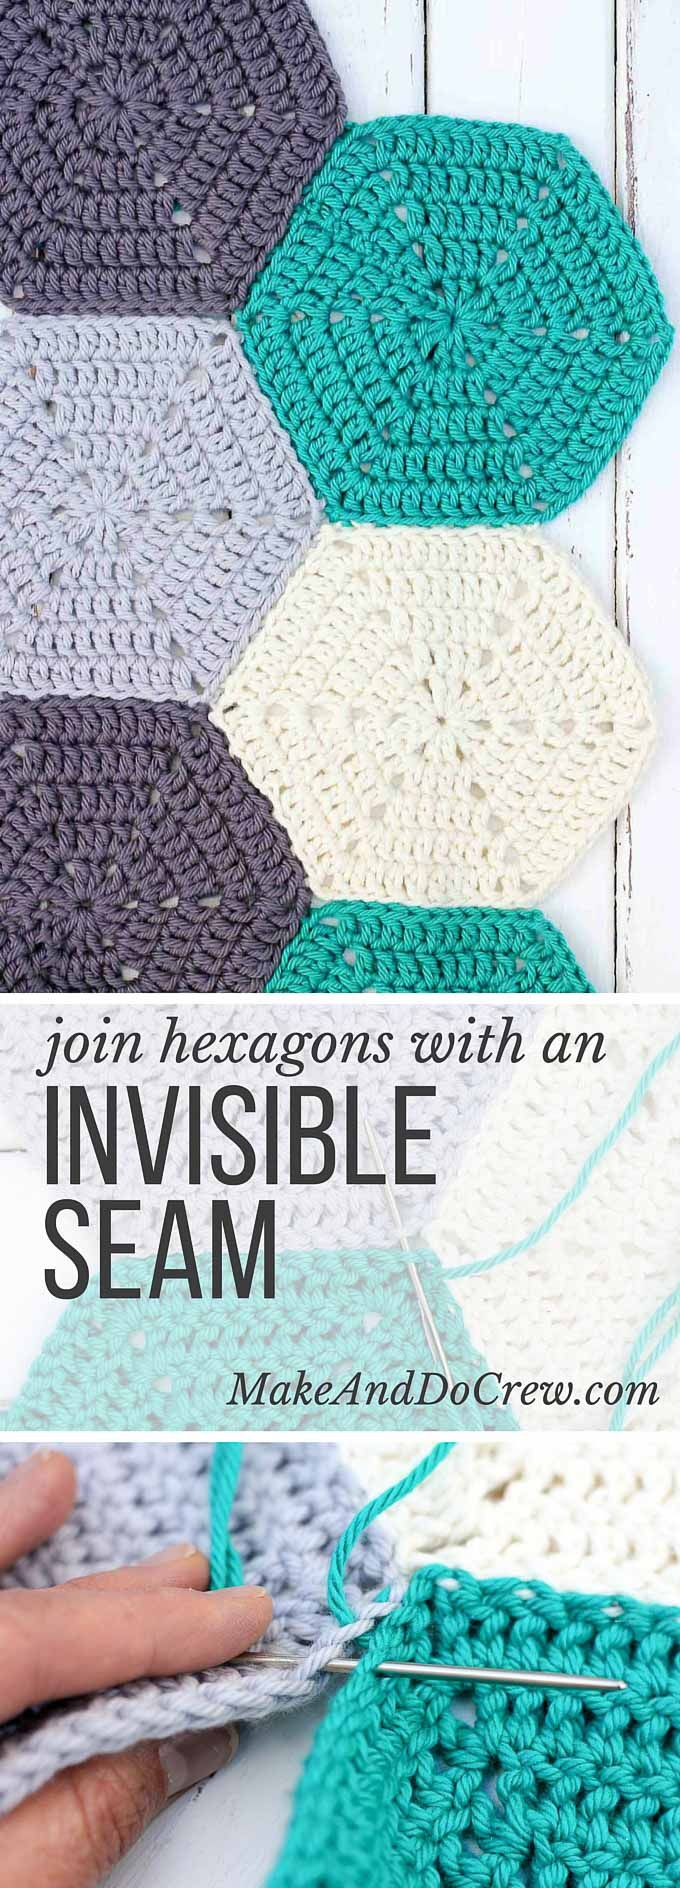 This crochet photo tutorial will show you how to join crochet hexagons with a technique that results in an invisible seam. So handy!